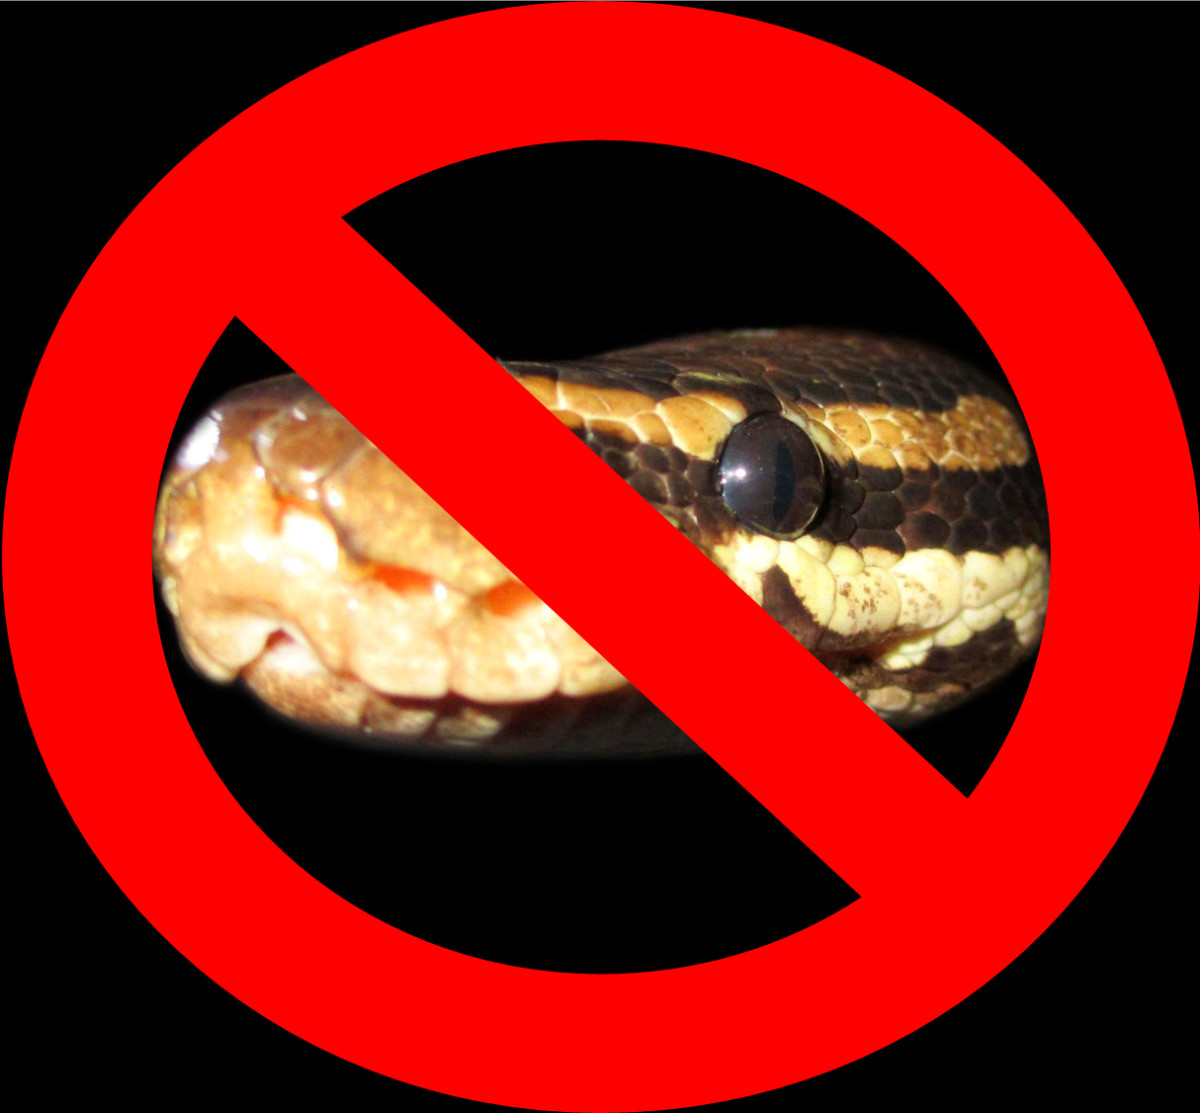 Should we struggle to pass legislation to outlaw the ownership of pythons as punishment for the misdeeds of a few irresponsible people? Should accidents such as this take priority over the thousands of python owners whose pets would never harm a fly?